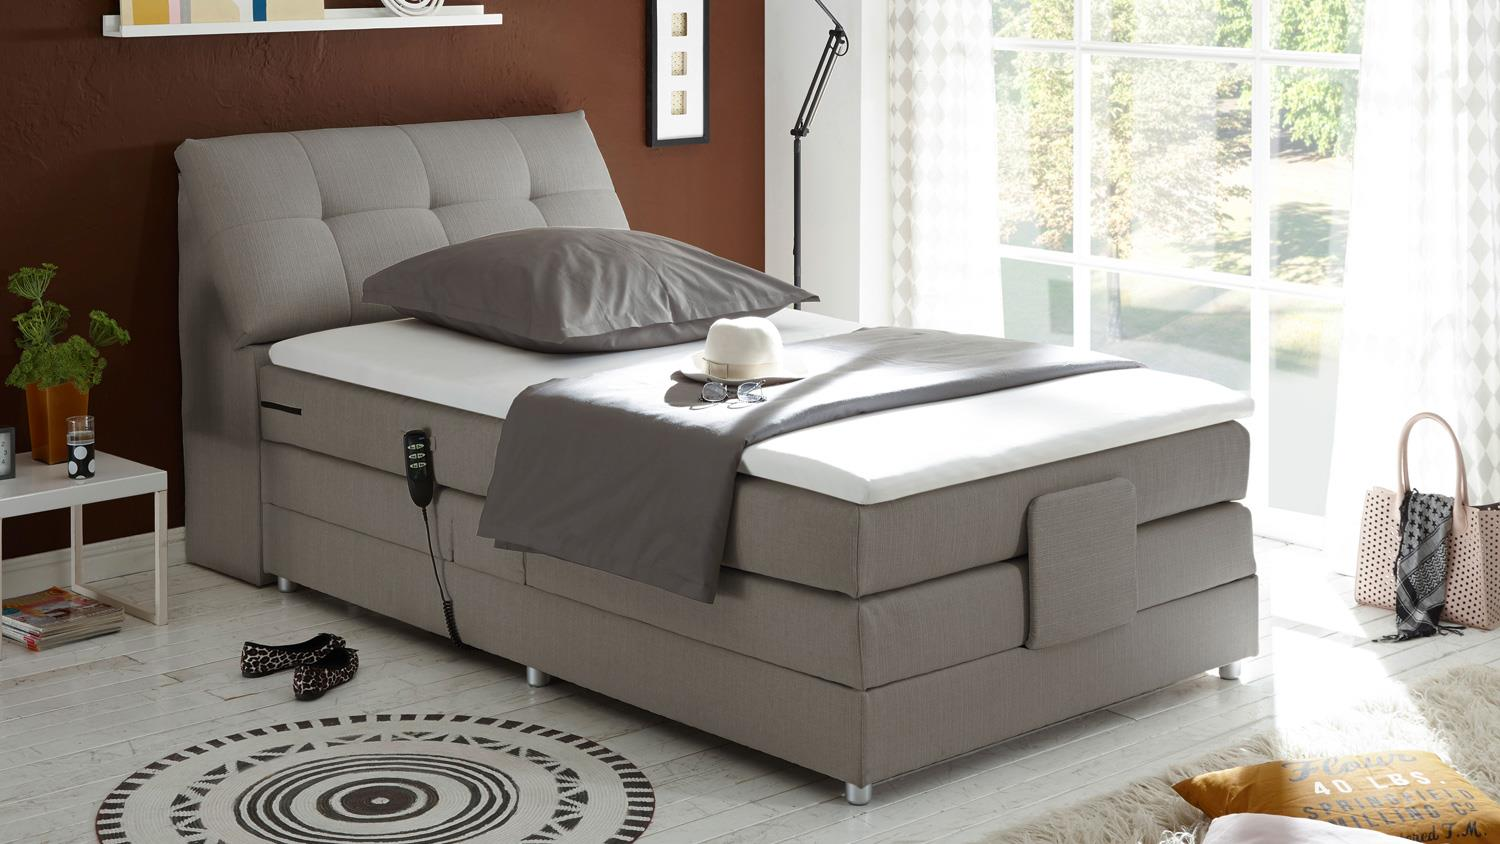 boxspringbett concort stoff silber komfortbett mit motor. Black Bedroom Furniture Sets. Home Design Ideas